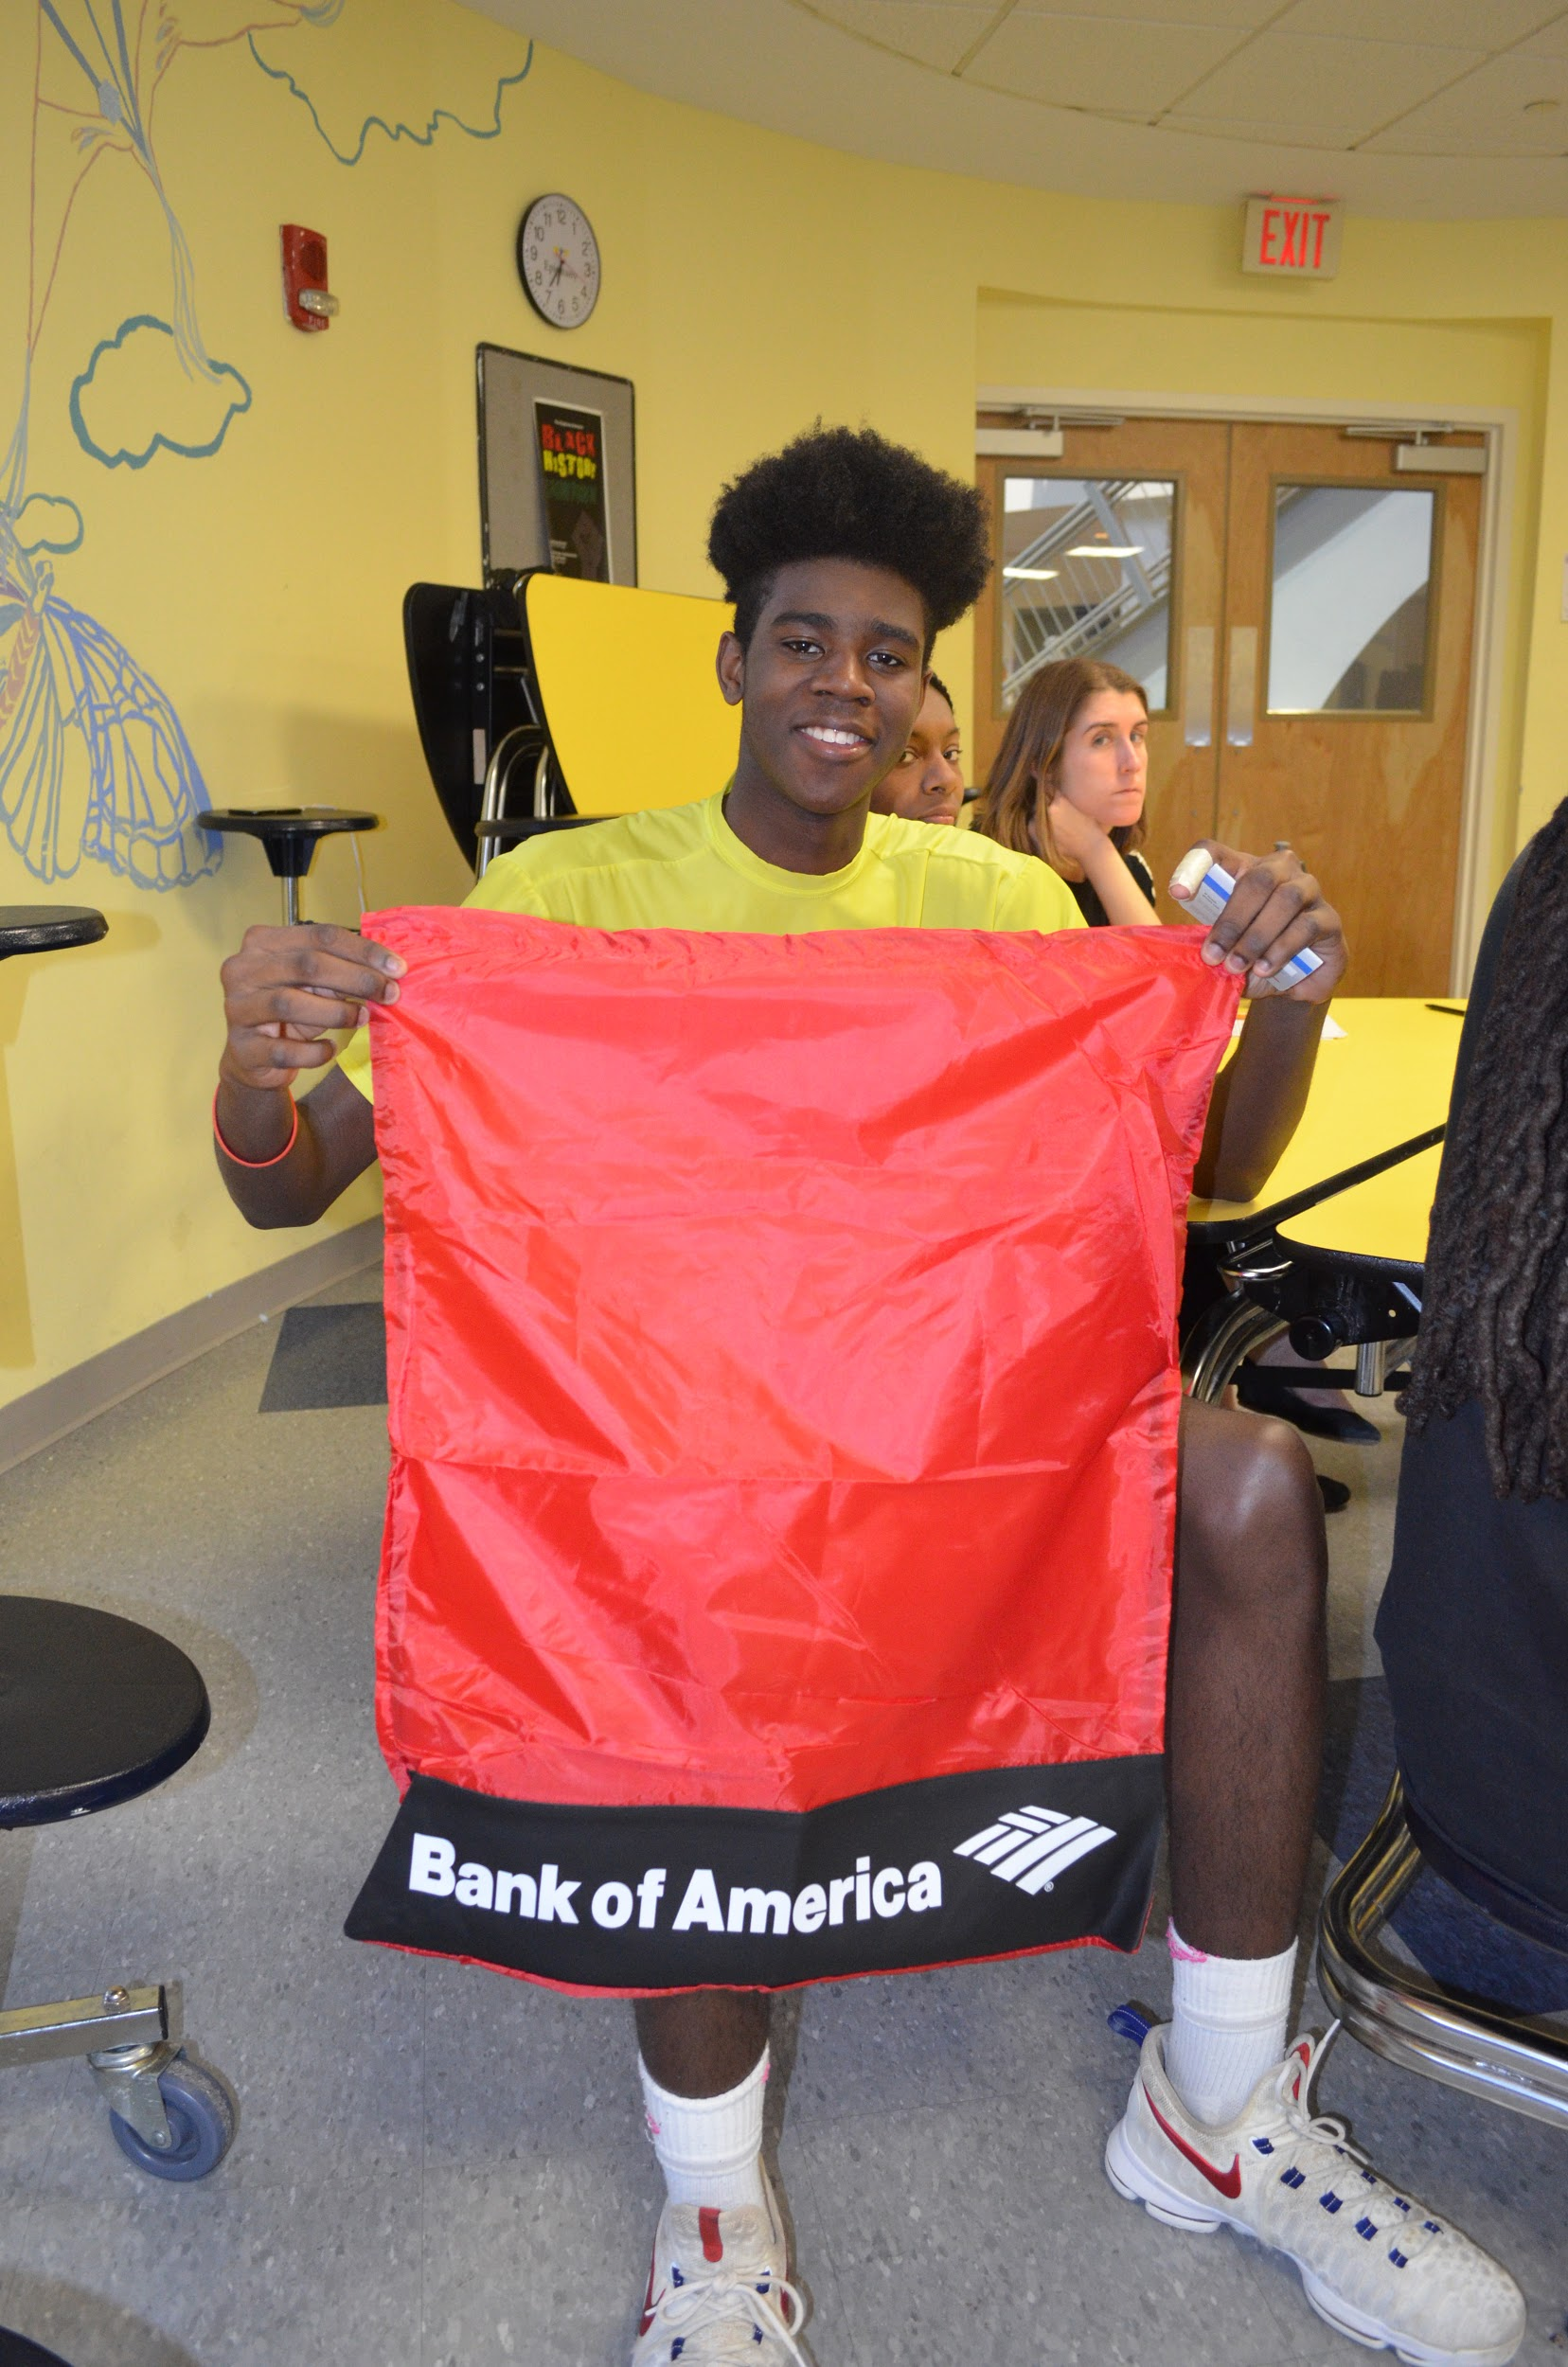 Krischon with his Bank of America laundry bag